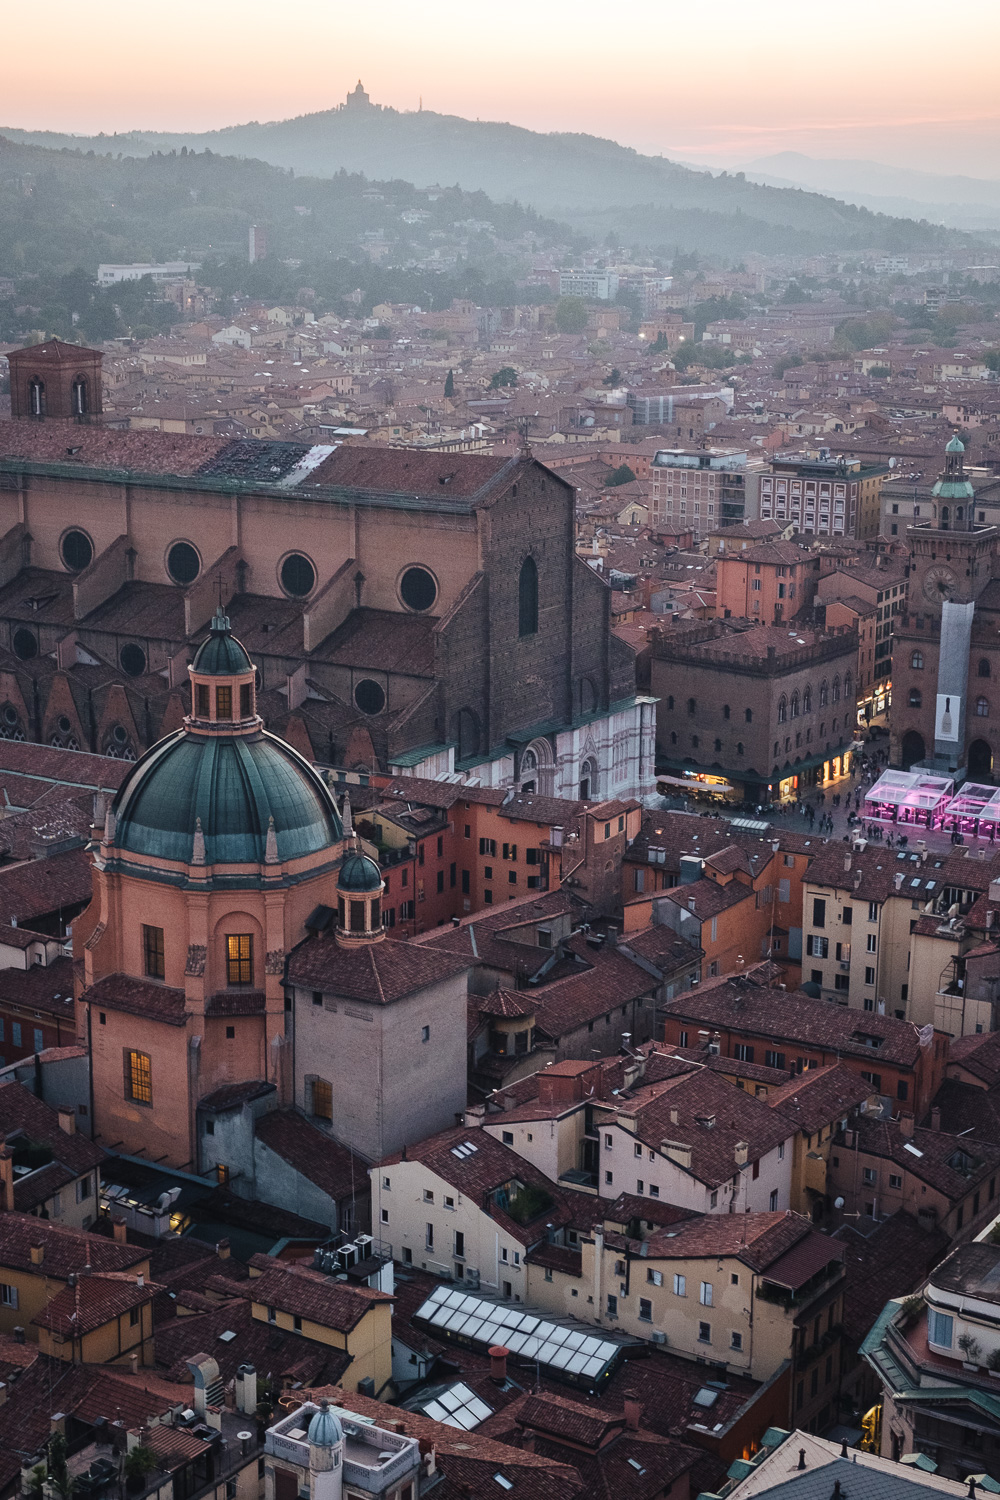 Bologna at sunset, as seen from the top of the Asinelli Tower | Six Beautiful Places you Must Visit in Emilia Romagna | Mondomulia